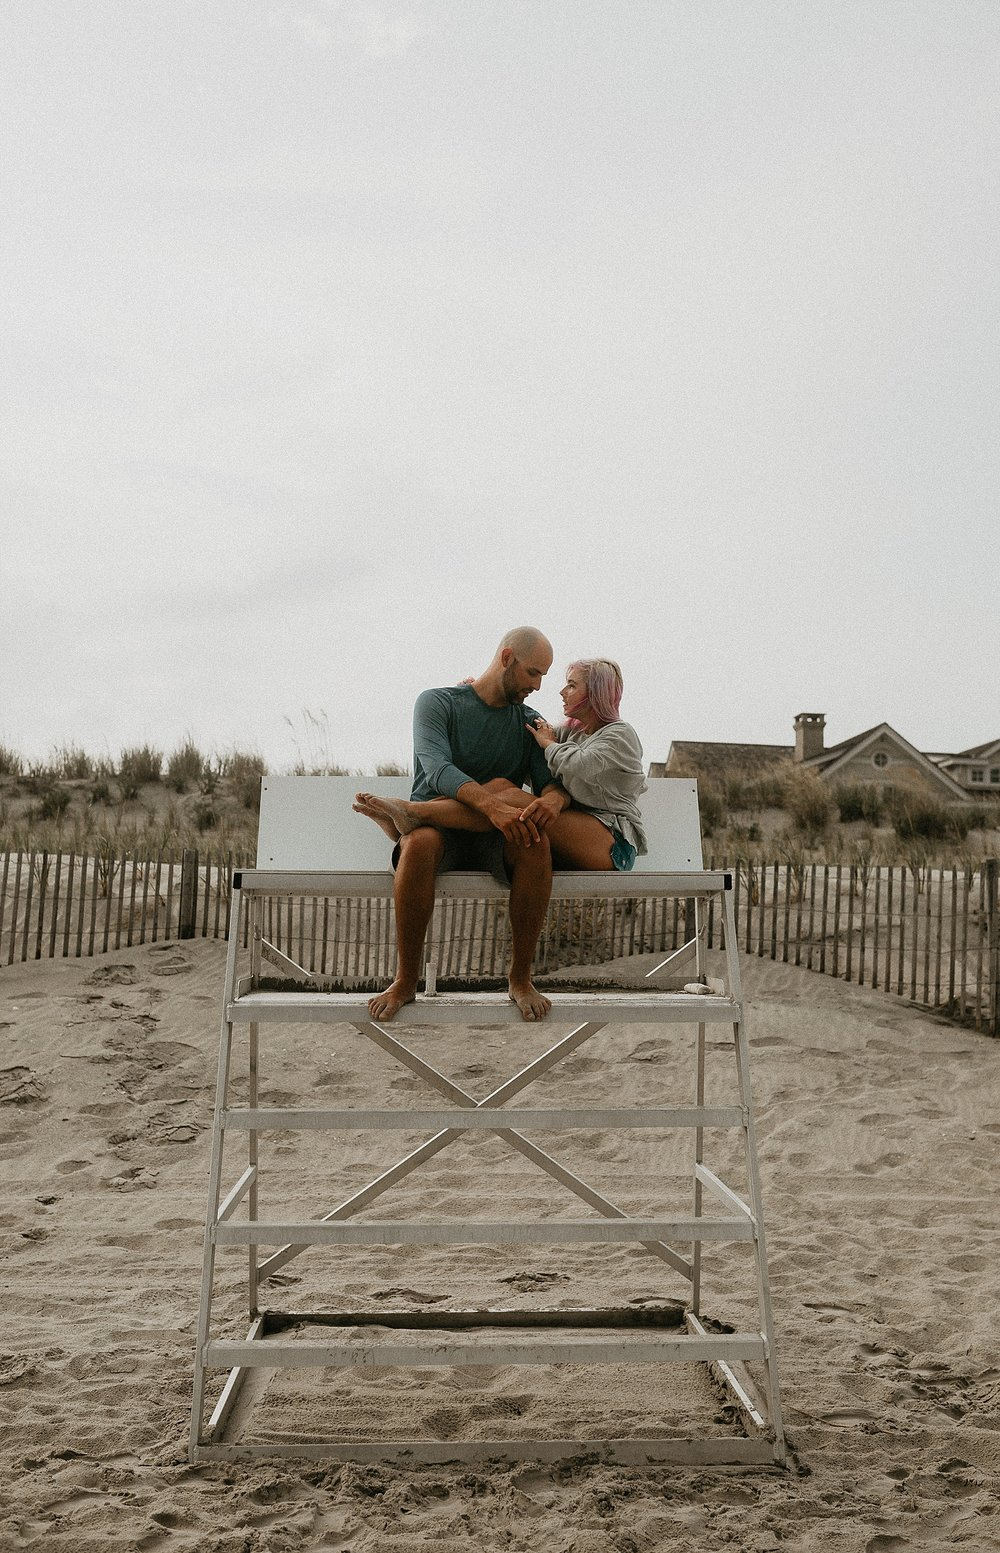 Engagement photo on lifeguard stand in Stone Harbor beach New Jersey